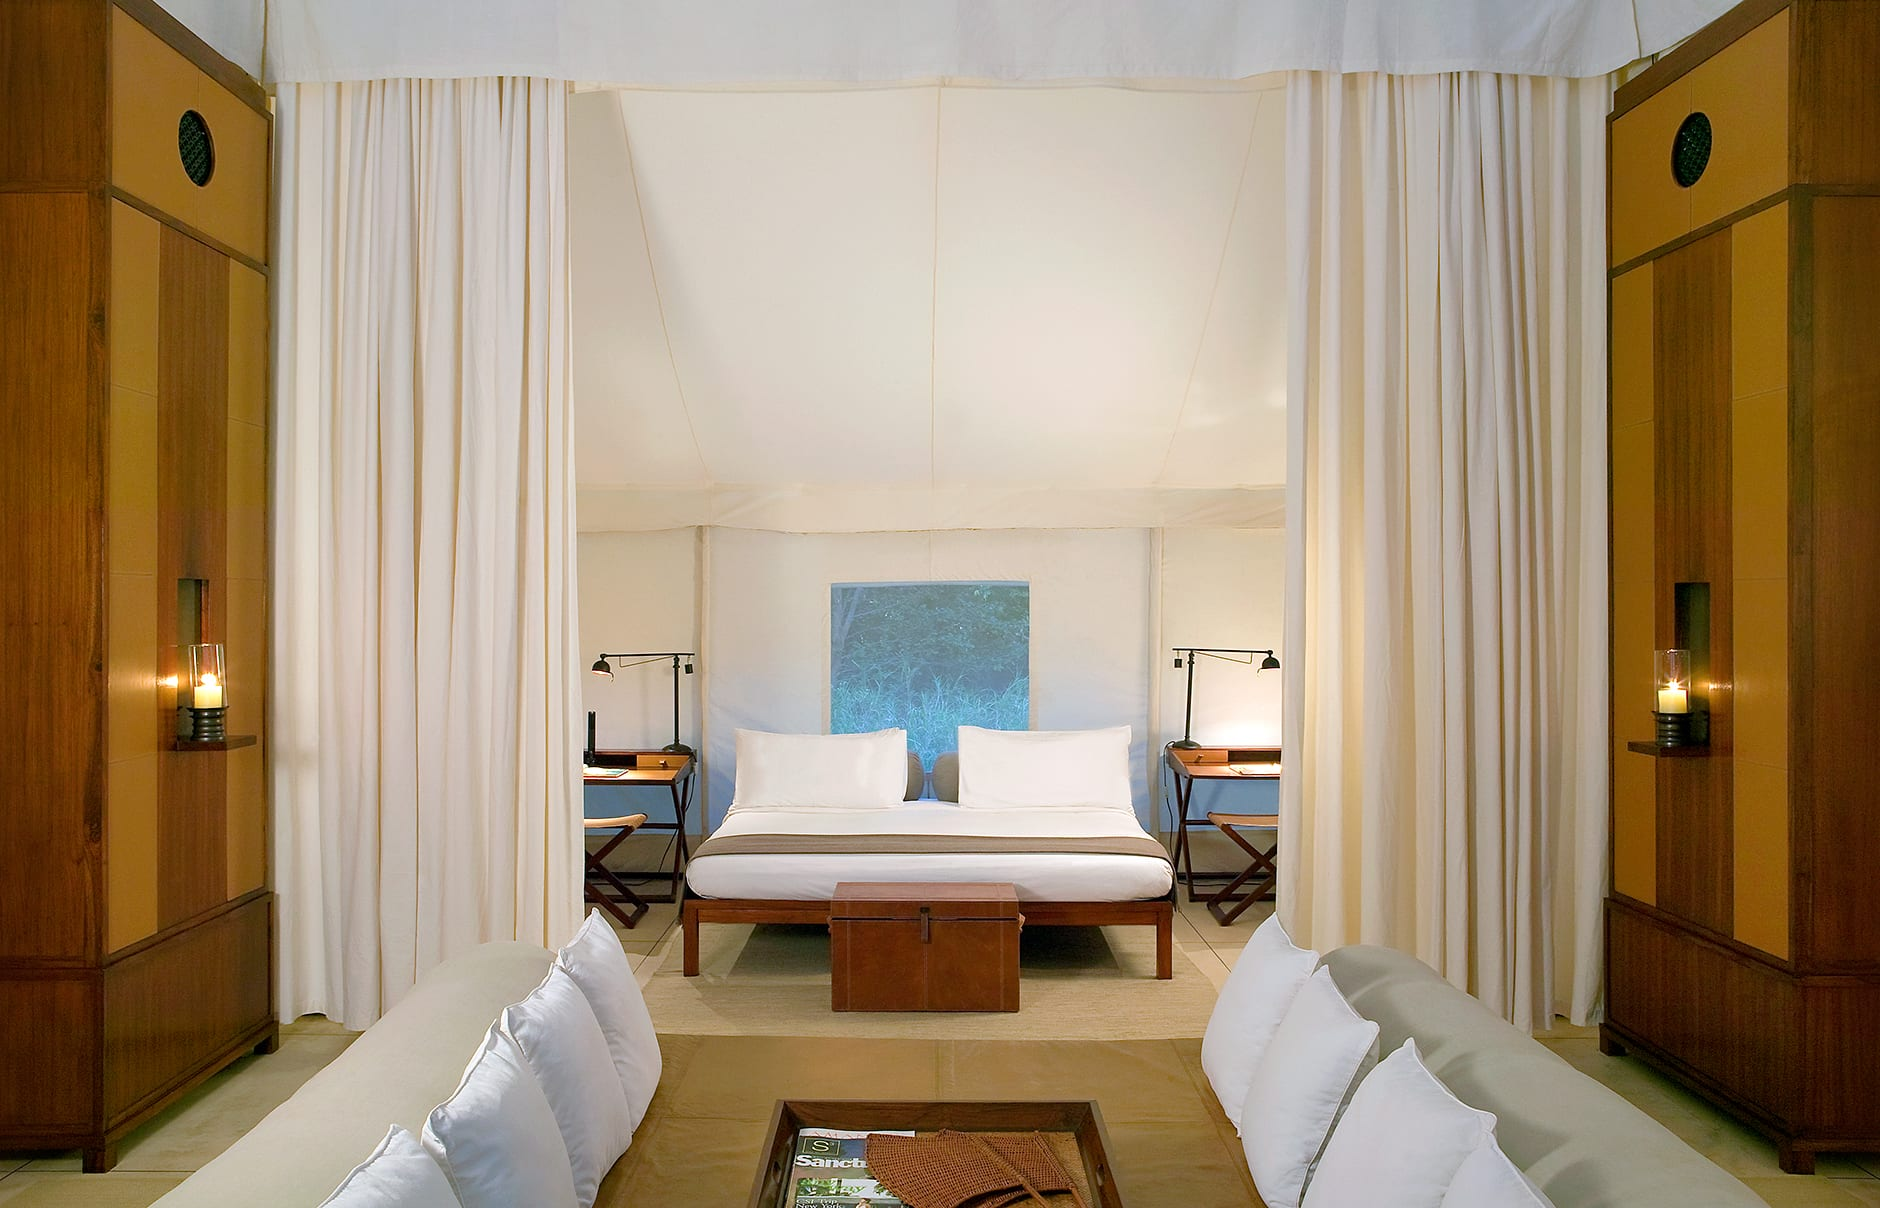 Tent Bedroom and Daybed. Aman-i-Khas, Ranthambhore, India. © Amanresorts